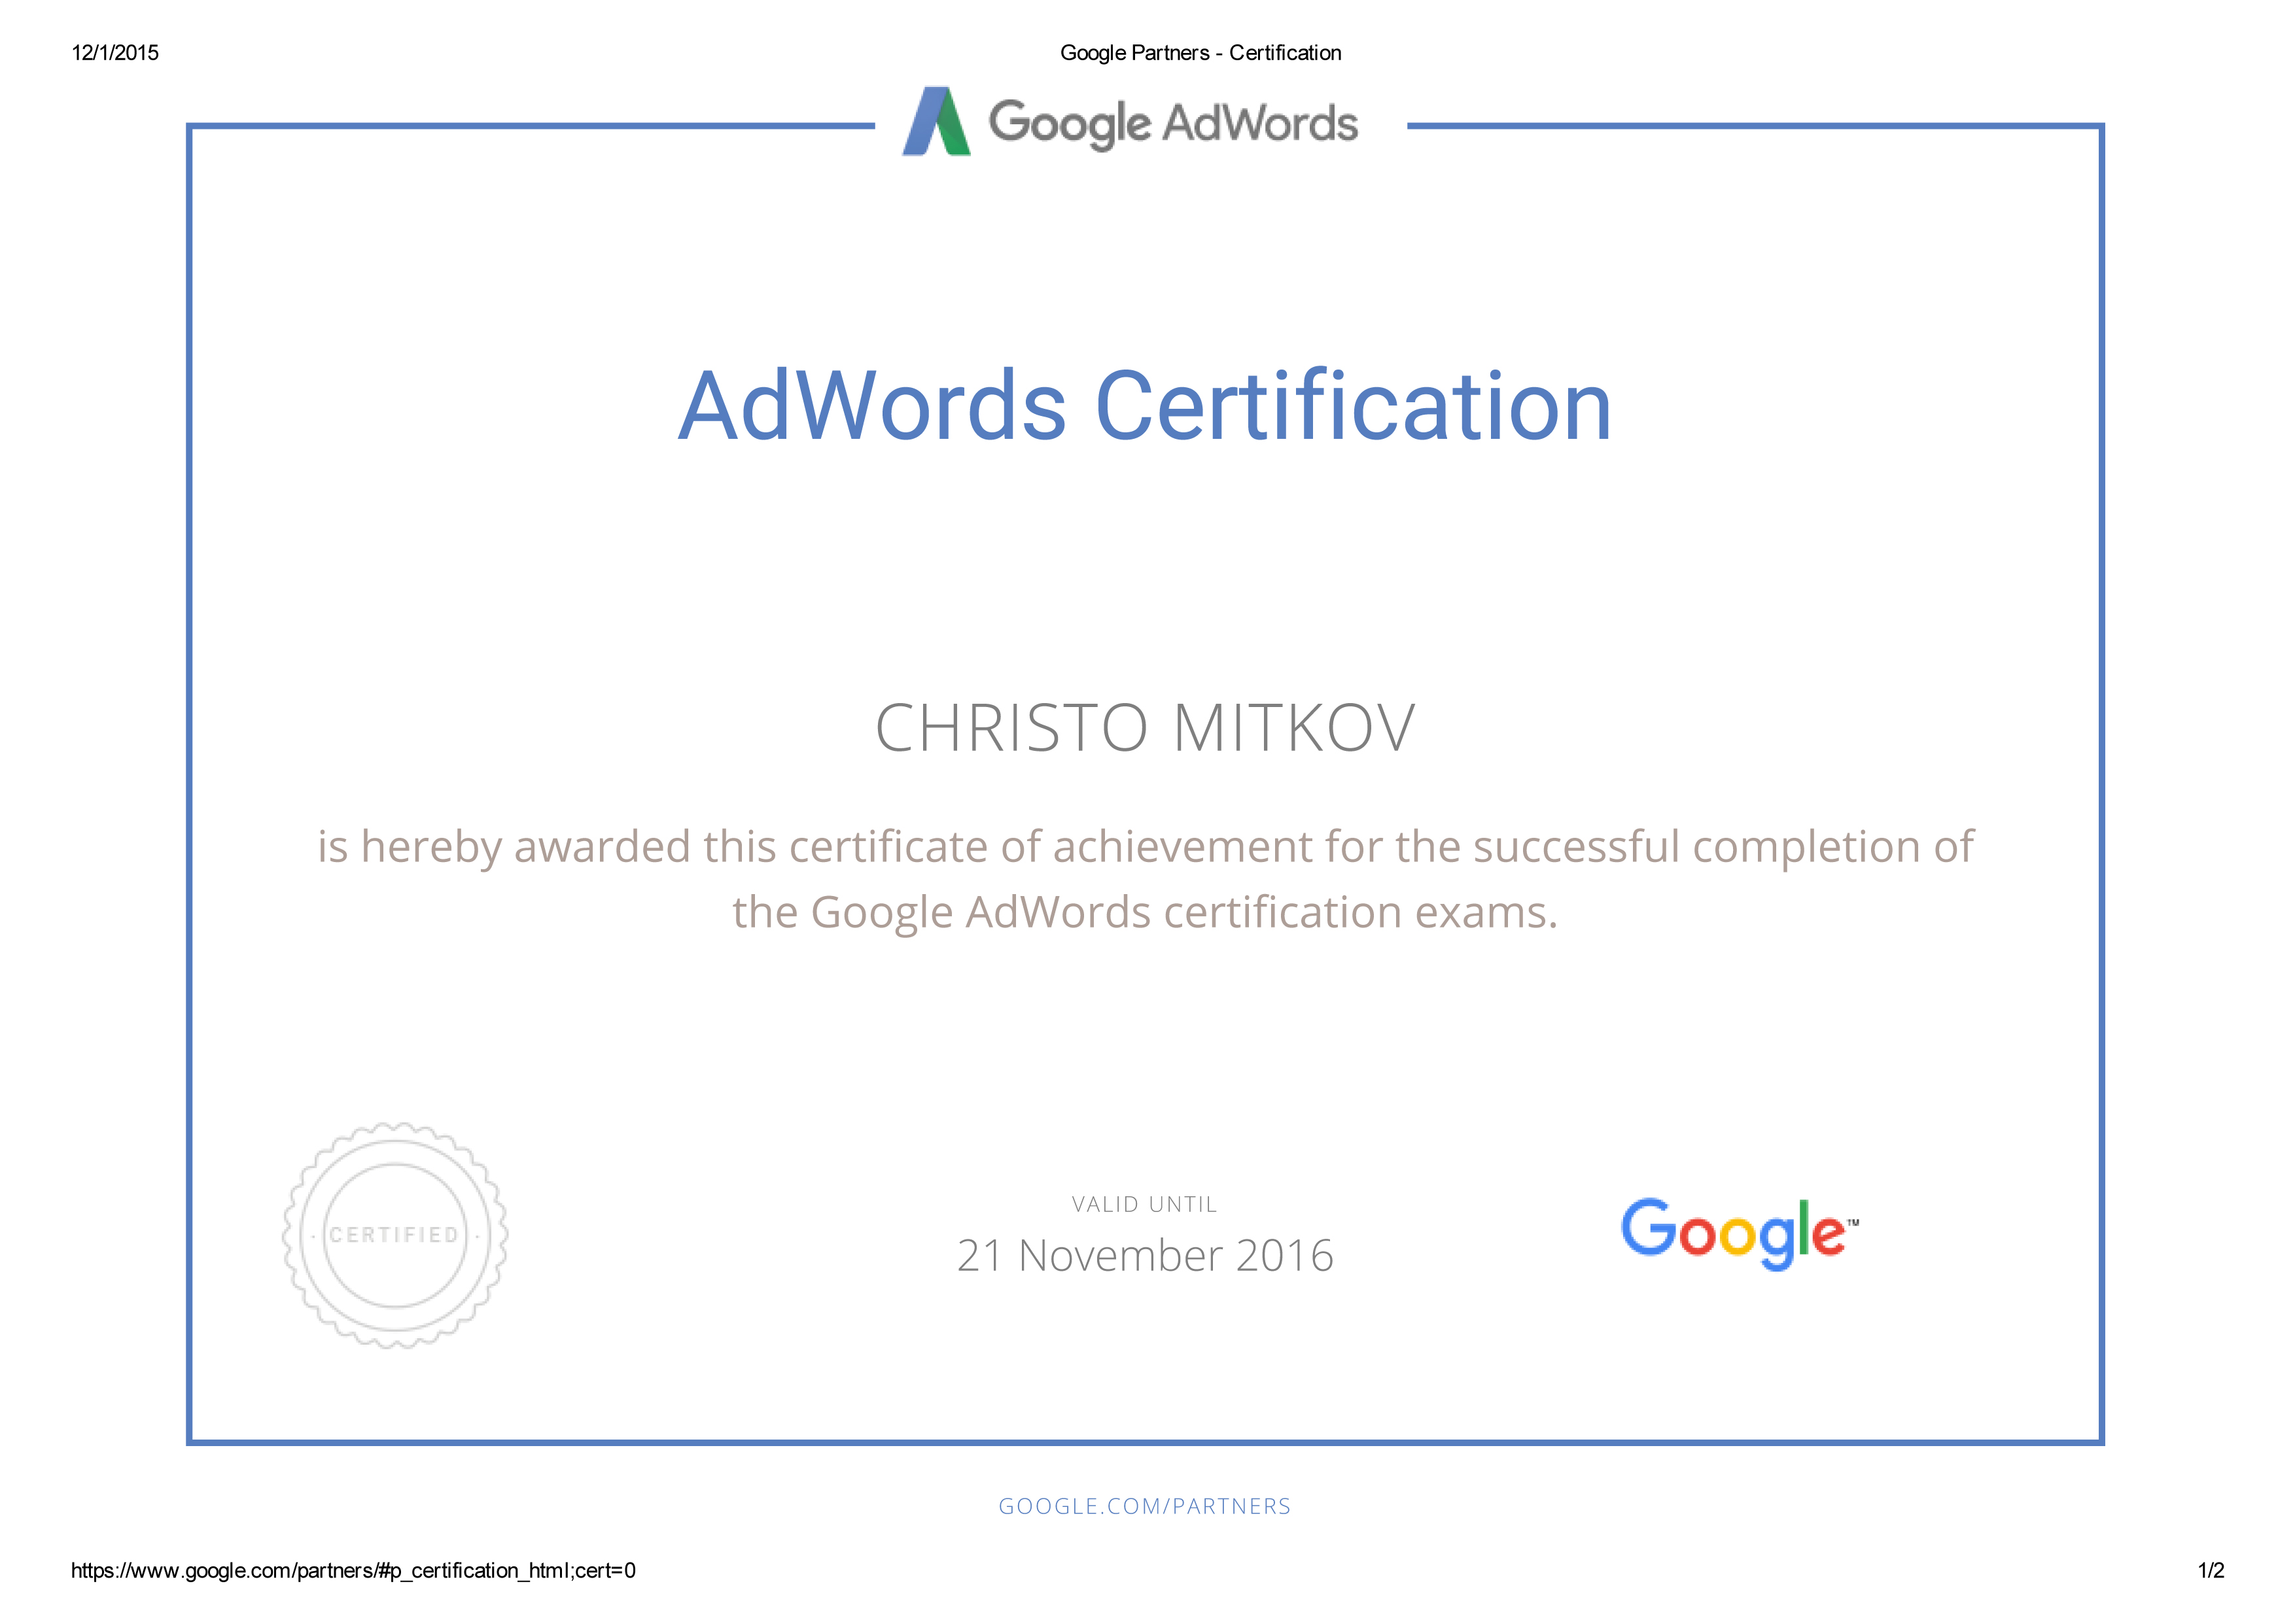 Google Adwords Advanced Search Certificate 2016